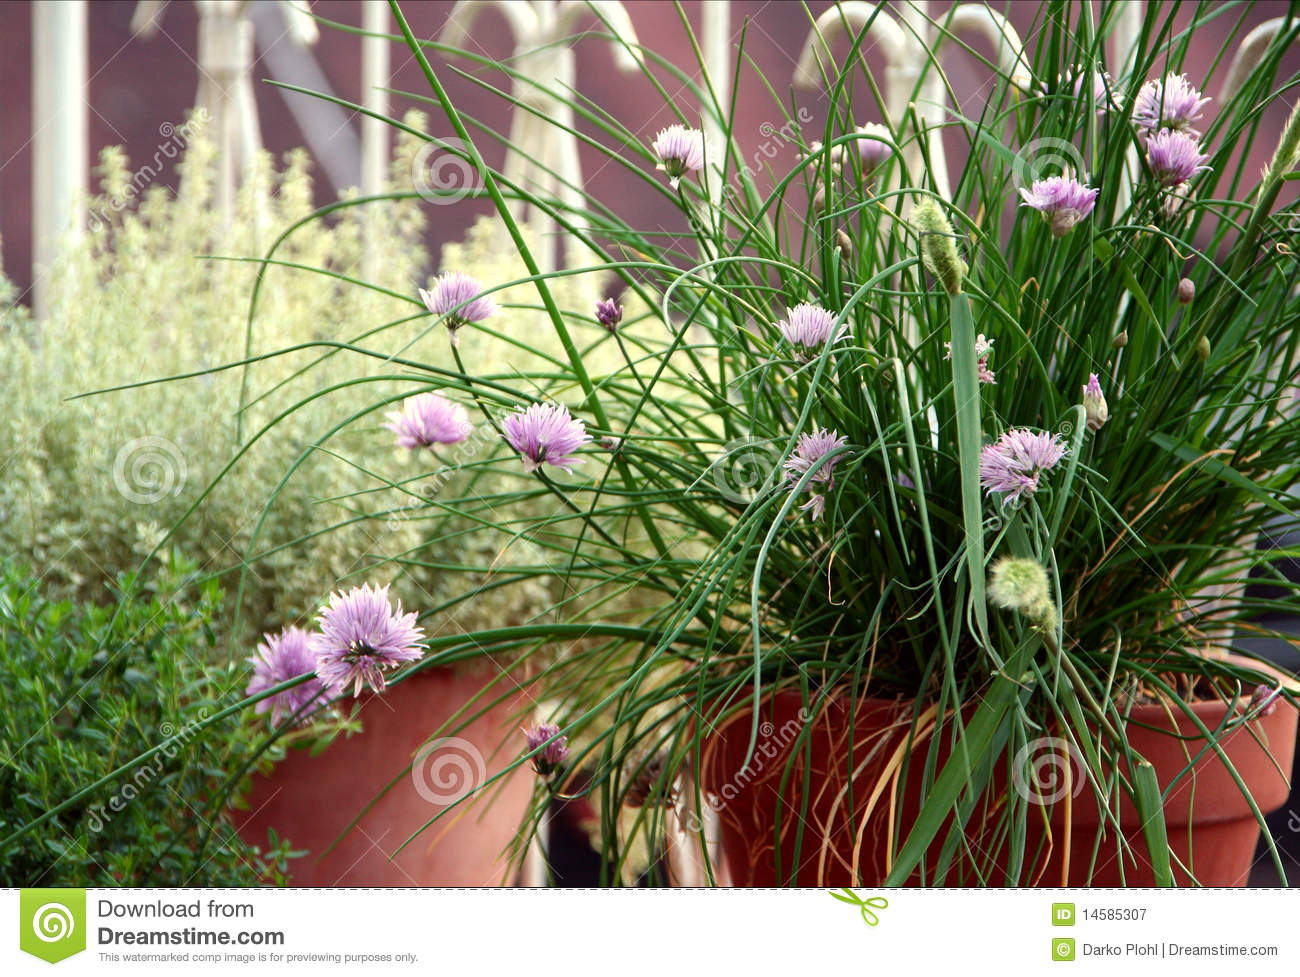 Chive and other herbs